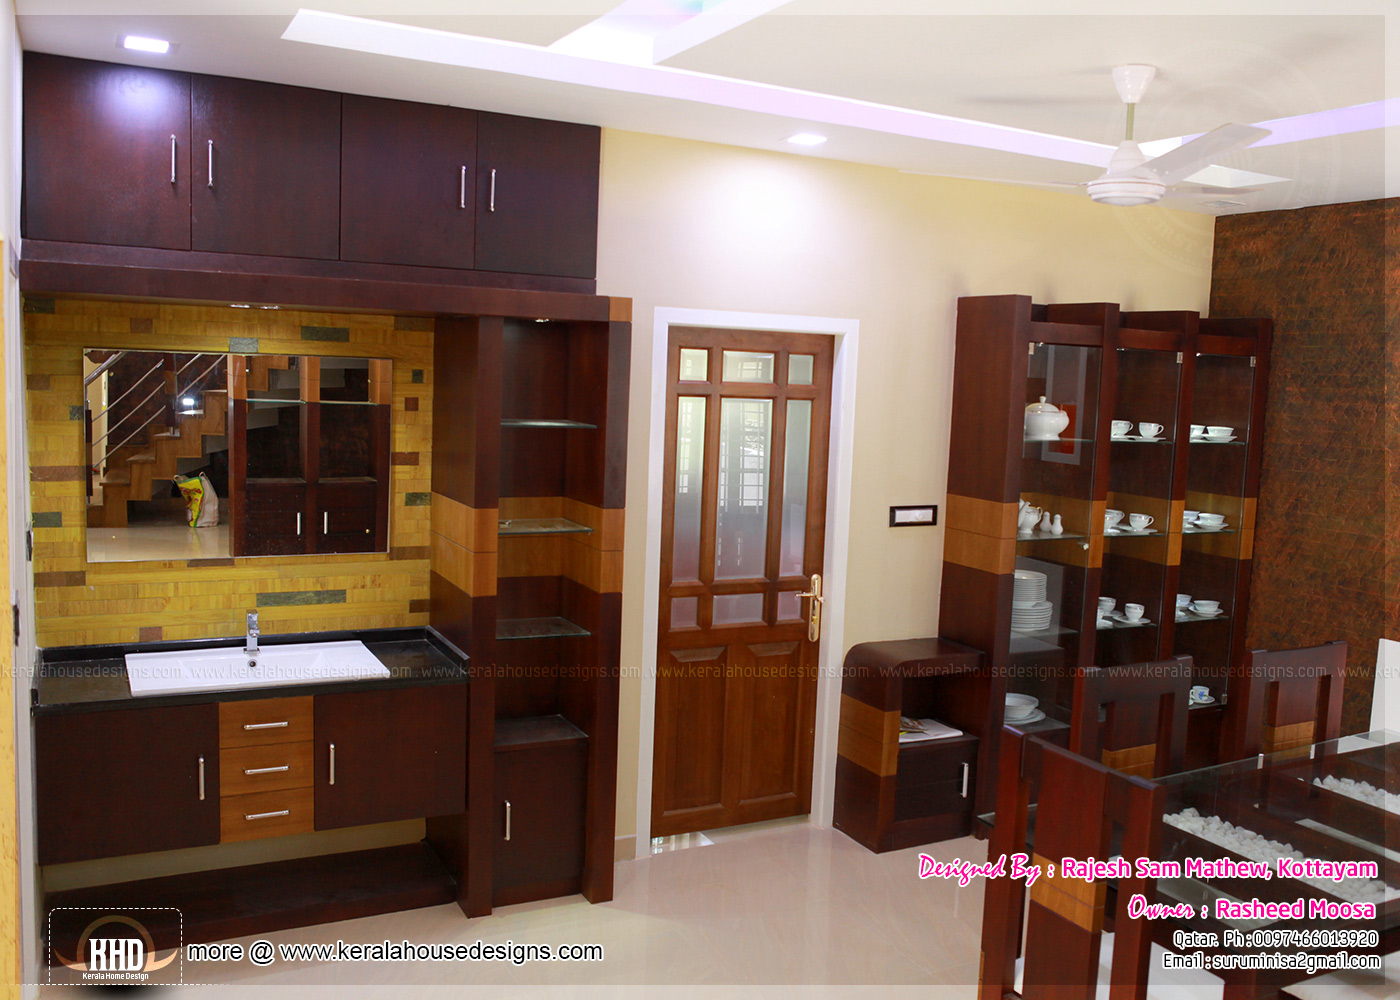 Kerala interior design with photos home kerala plans for Interior designs in kerala